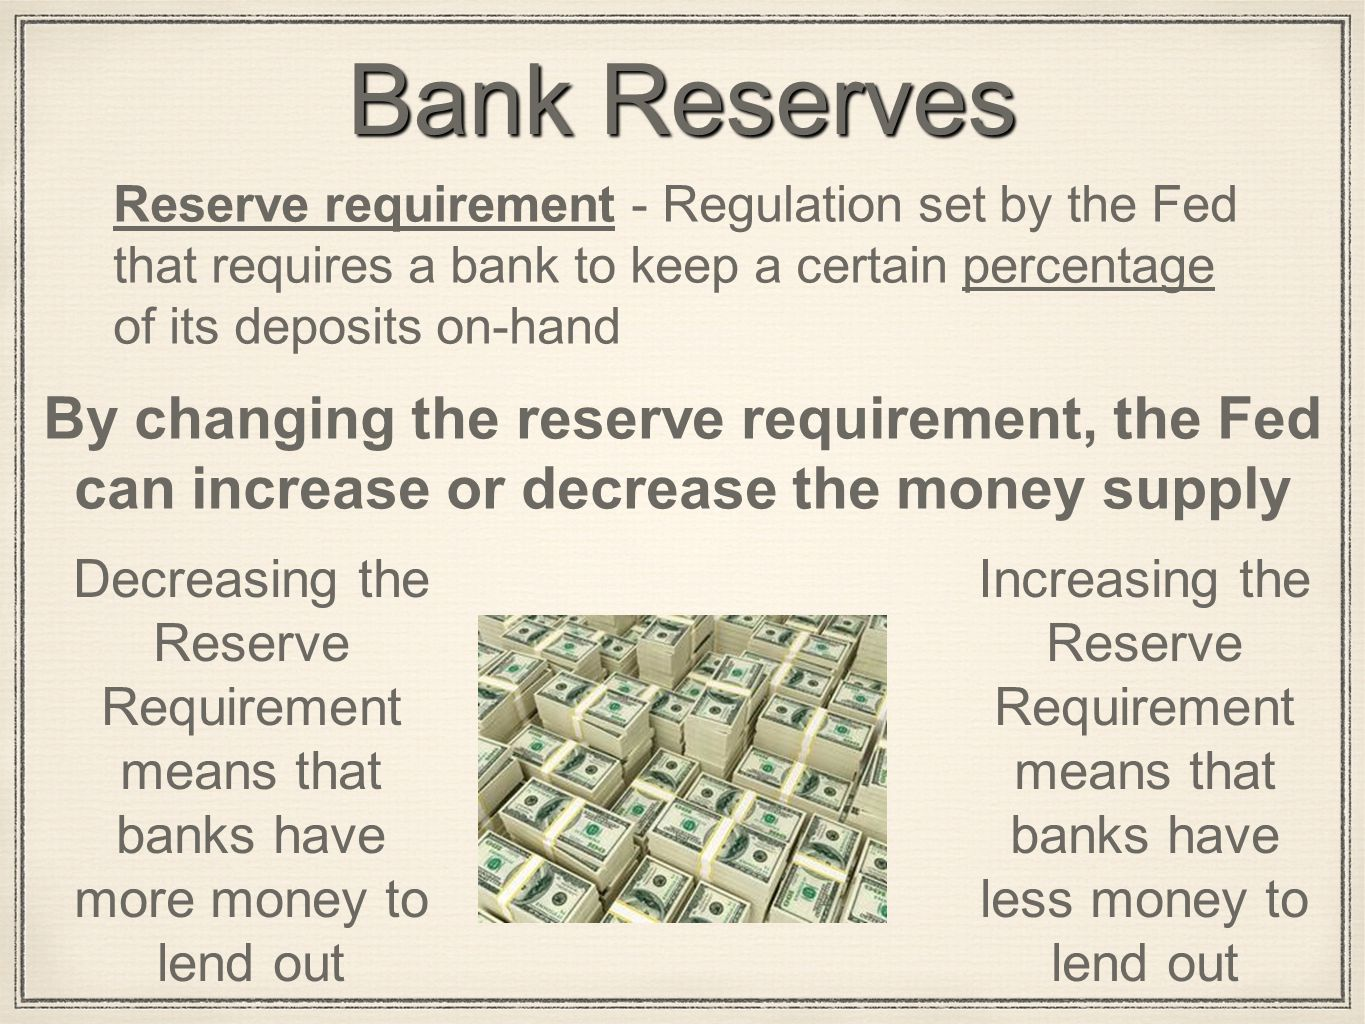 Bank Reserves Reserve requirement - Regulation set by the Fed that requires a bank to keep a certain percentage of its deposits on-hand By changing the reserve requirement, the Fed can increase or decrease the money supply Decreasing the Reserve Requirement means that banks have more money to lend out Increasing the Reserve Requirement means that banks have less money to lend out